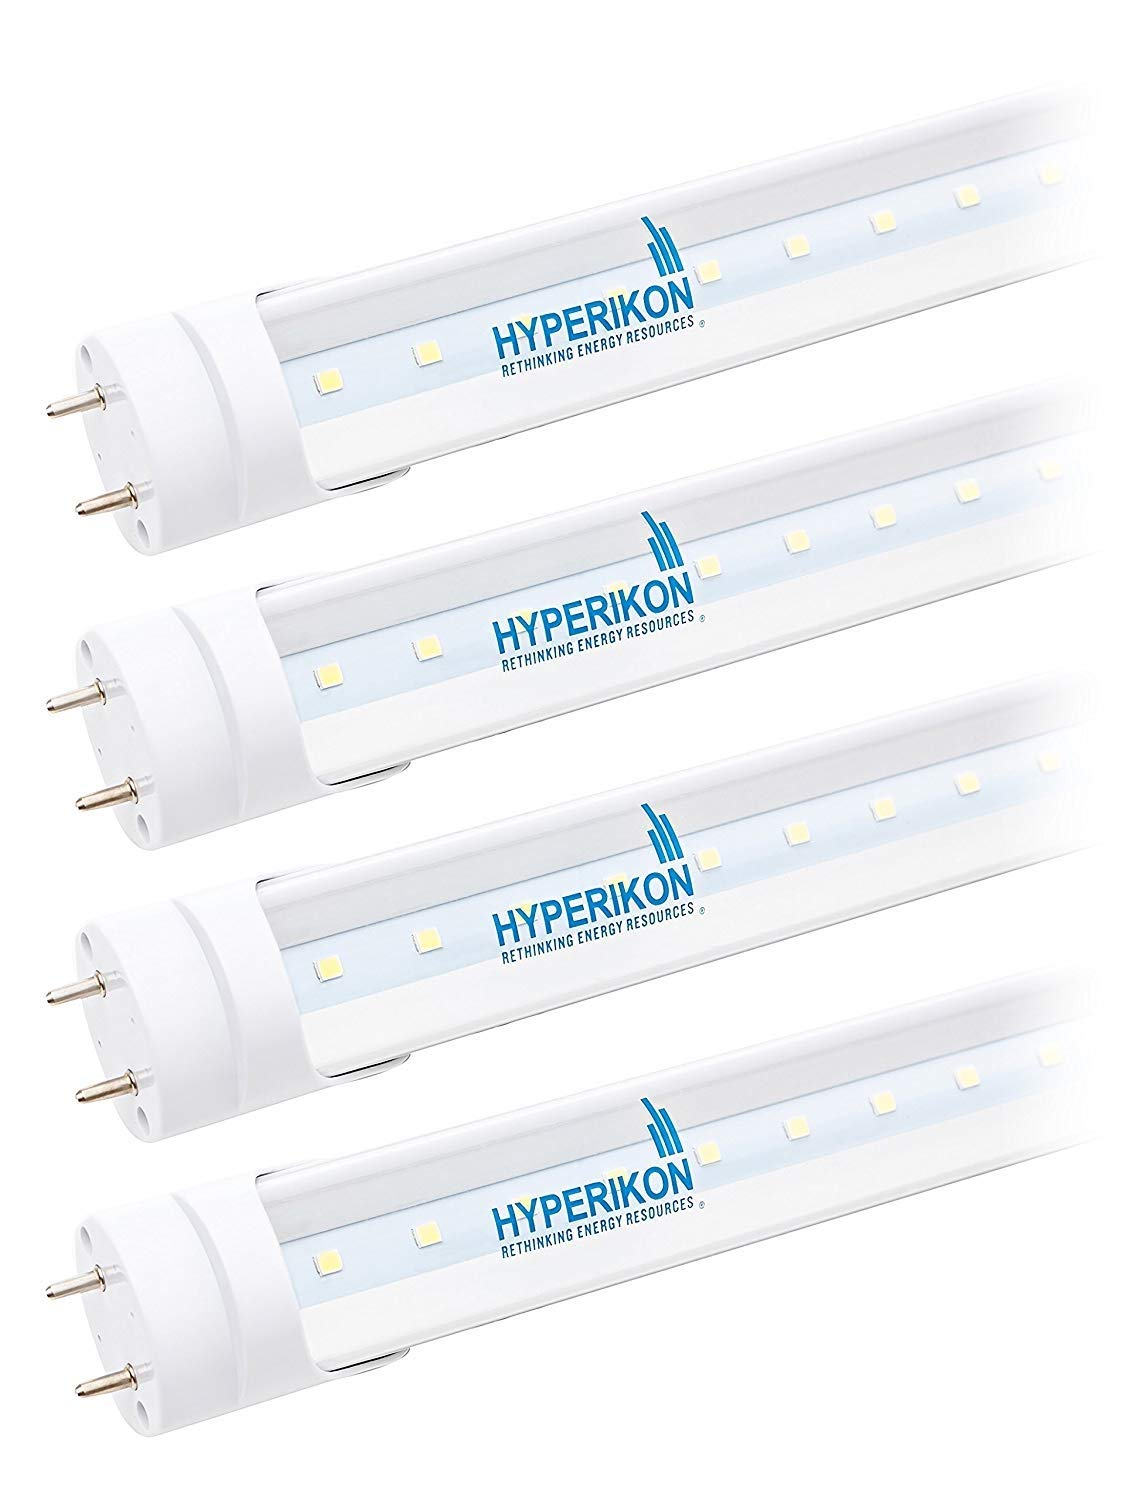 Hyperikon T8 Led Tube 3ft Light 14w 30w 40w Equiv Ballast Bulb Circuit Diagram In Addition Replacing Old Double Bypass Shatterproof F30t12 Fluorescent Replacement 1400 Lumens 4000k Clear Office Kitchen Garage Ceiling Lights 4 Pack